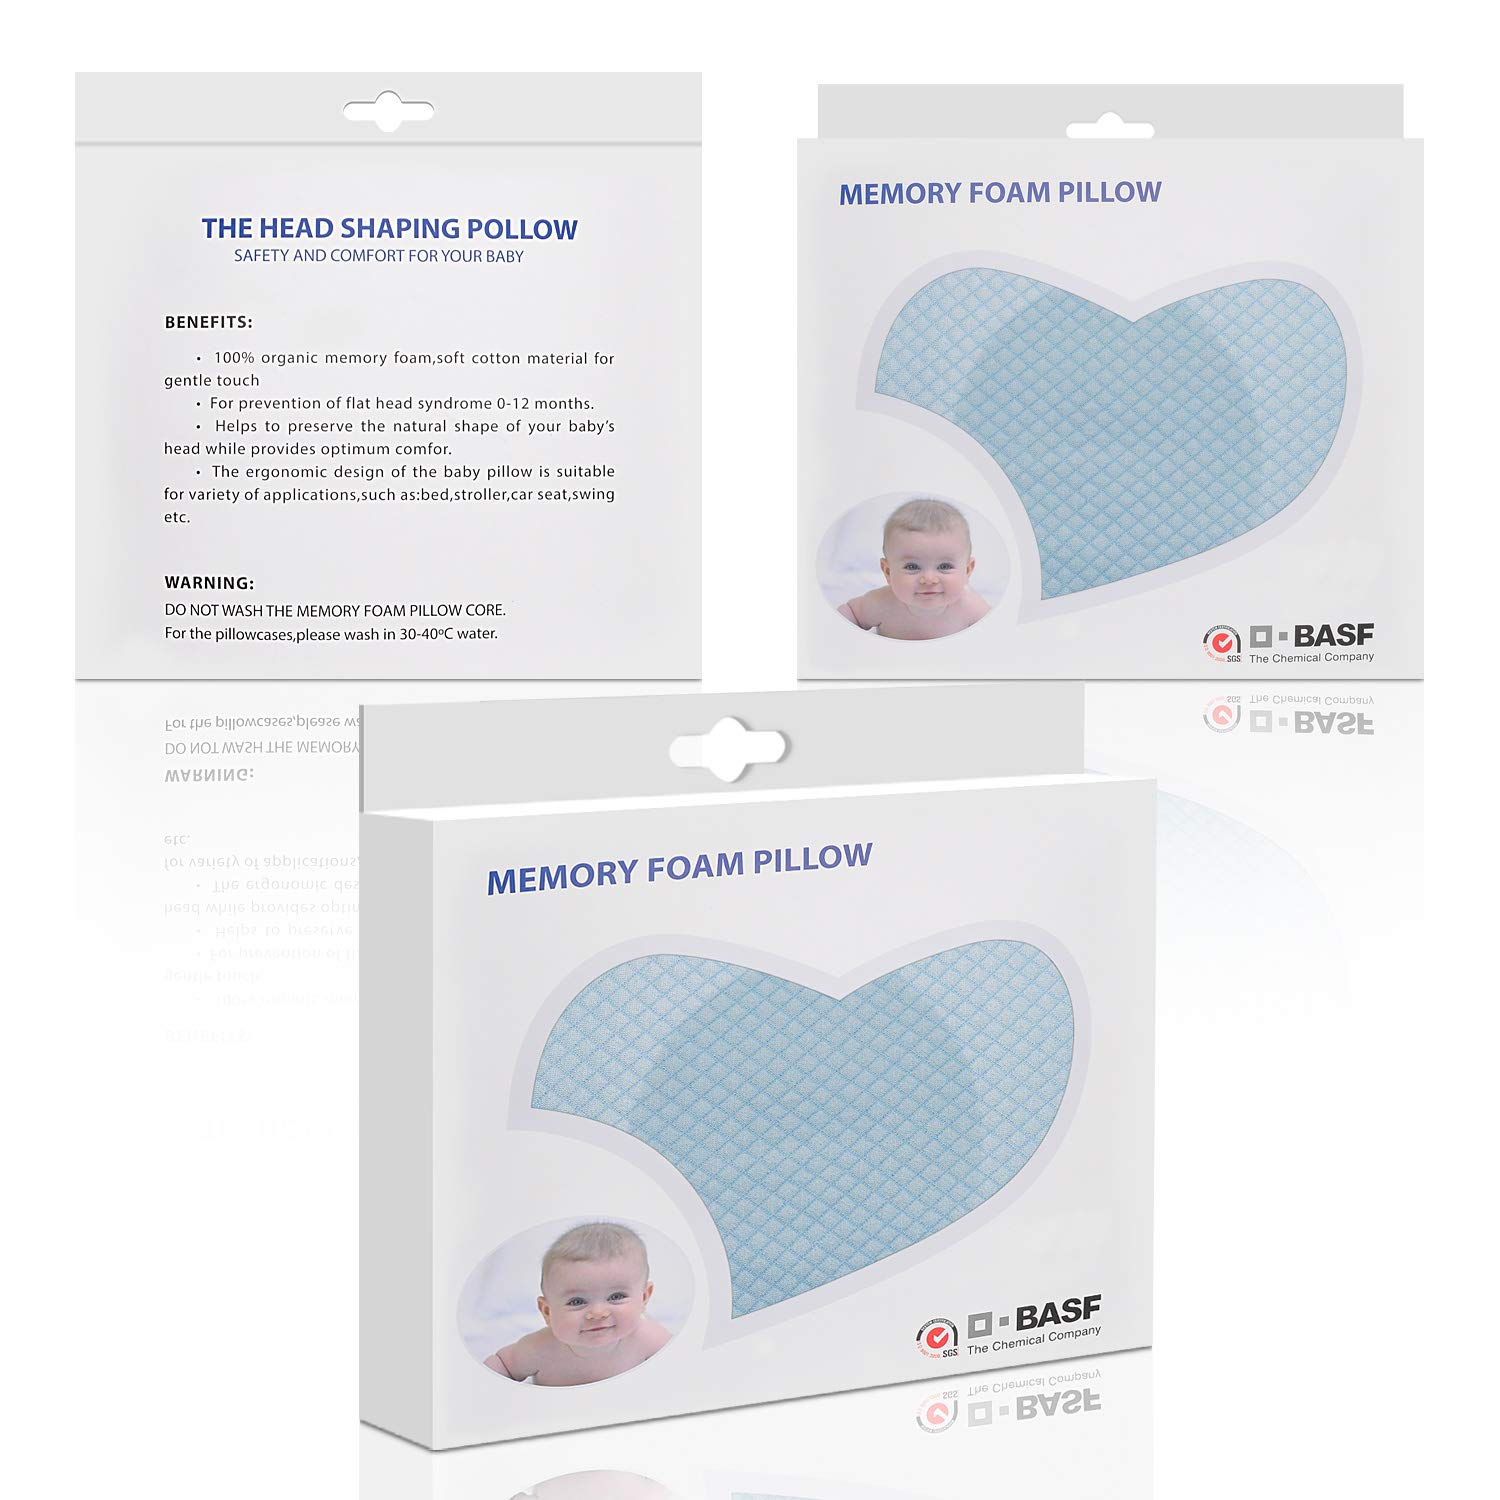 Best for Baby Shower//Registry Gift Elephant Heart Baby Head Shaping Pillow with 2 Color Removable Pillowcases Memory Foam Sleeping Cushion for Flat Head Syndrome Prevent Plagiocephaly for Newborn